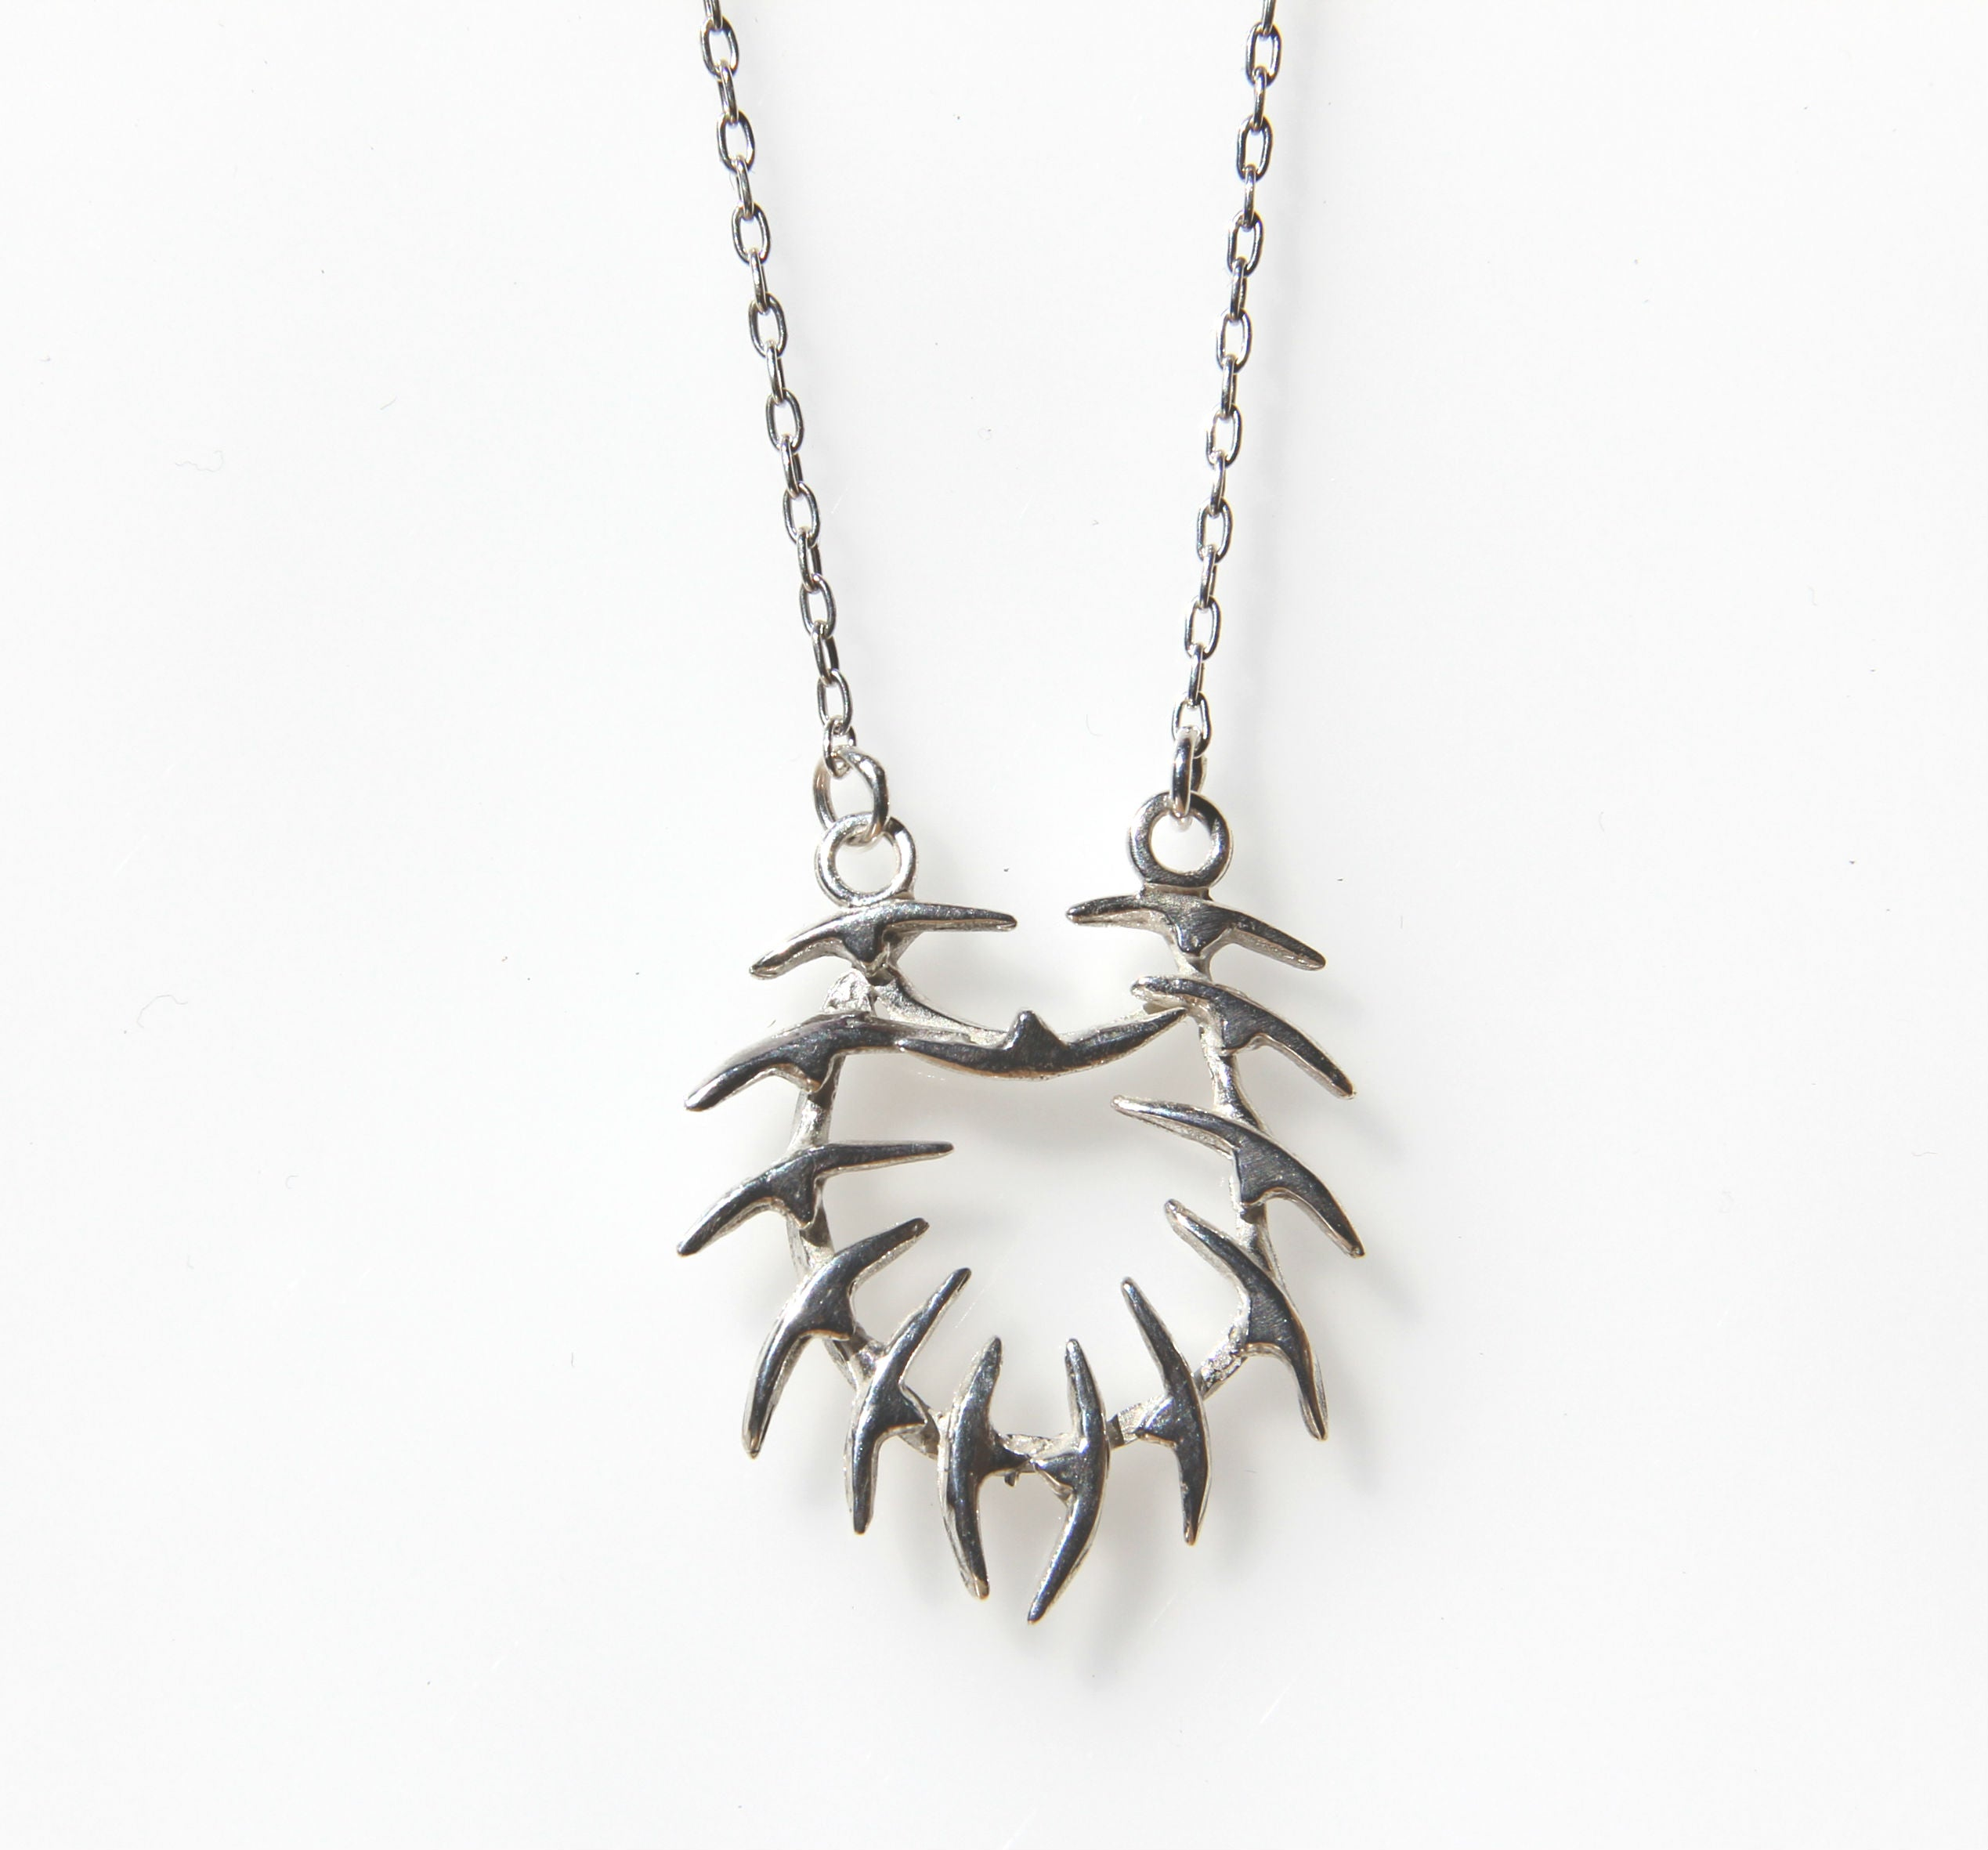 Amphidromic Necklace